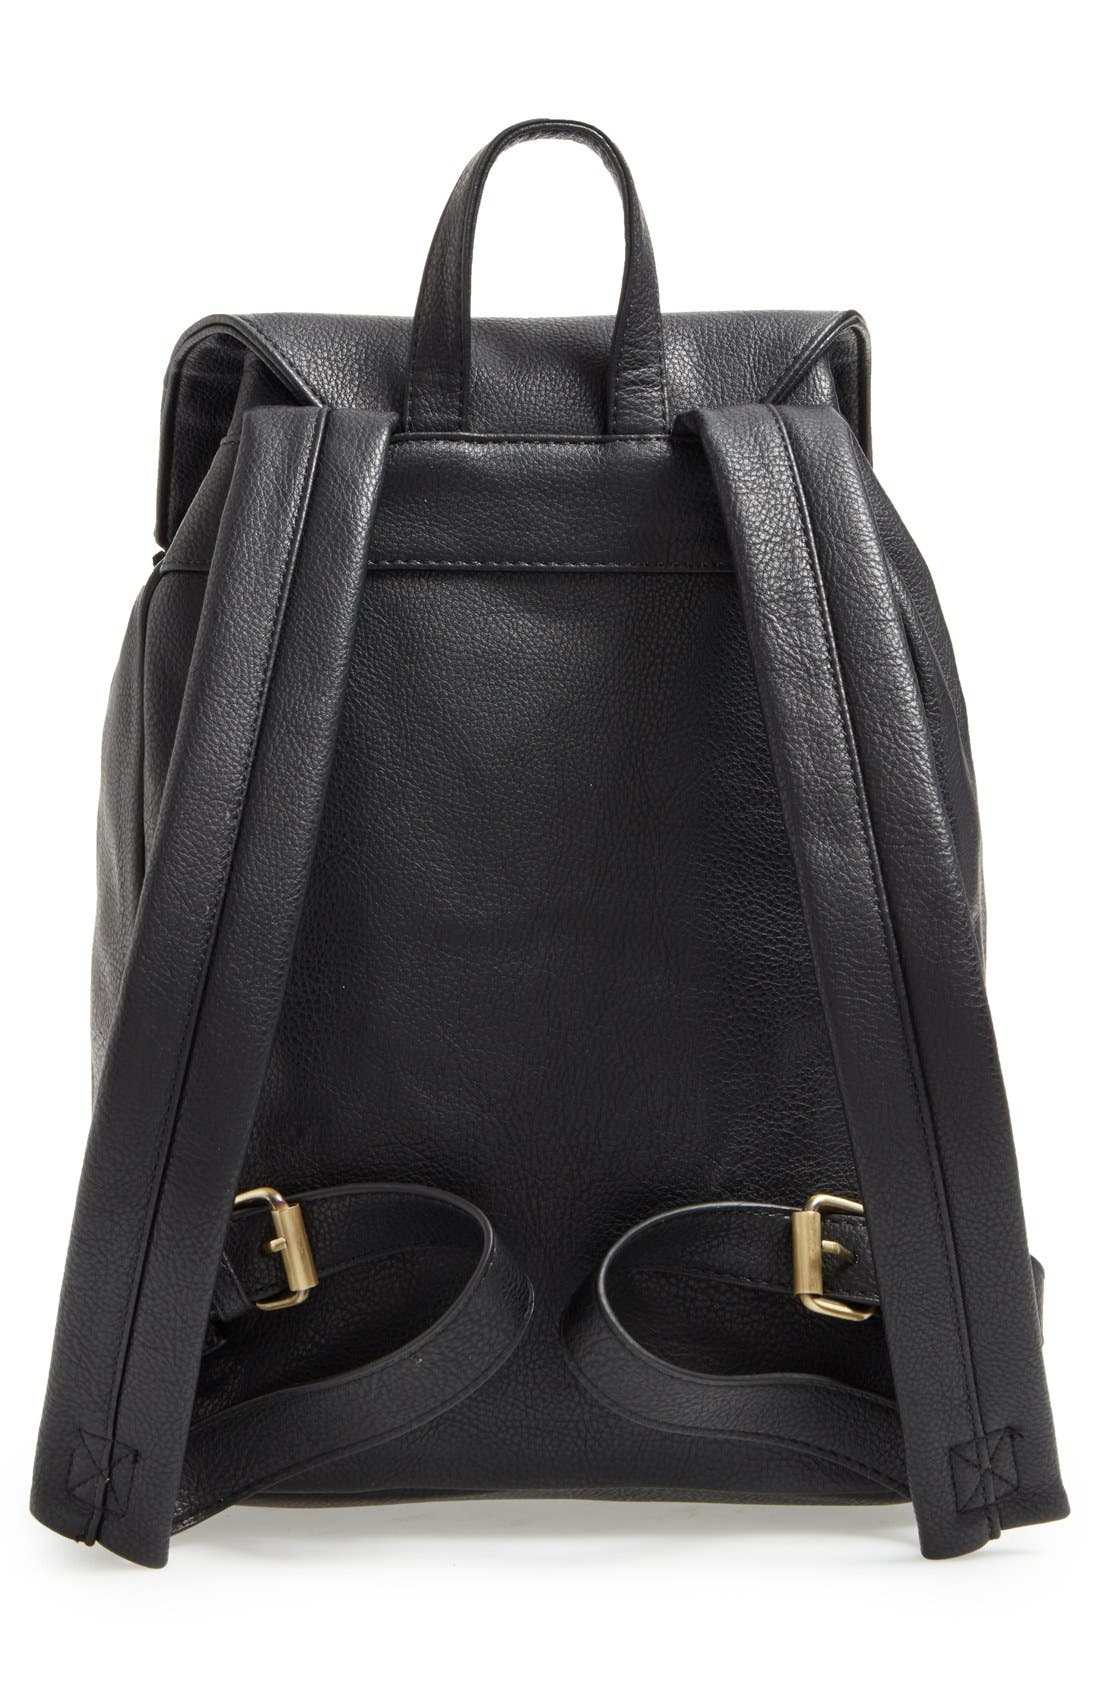 'Hartley' Faux Leather Backpack,                             Alternate thumbnail 6, color,                             001